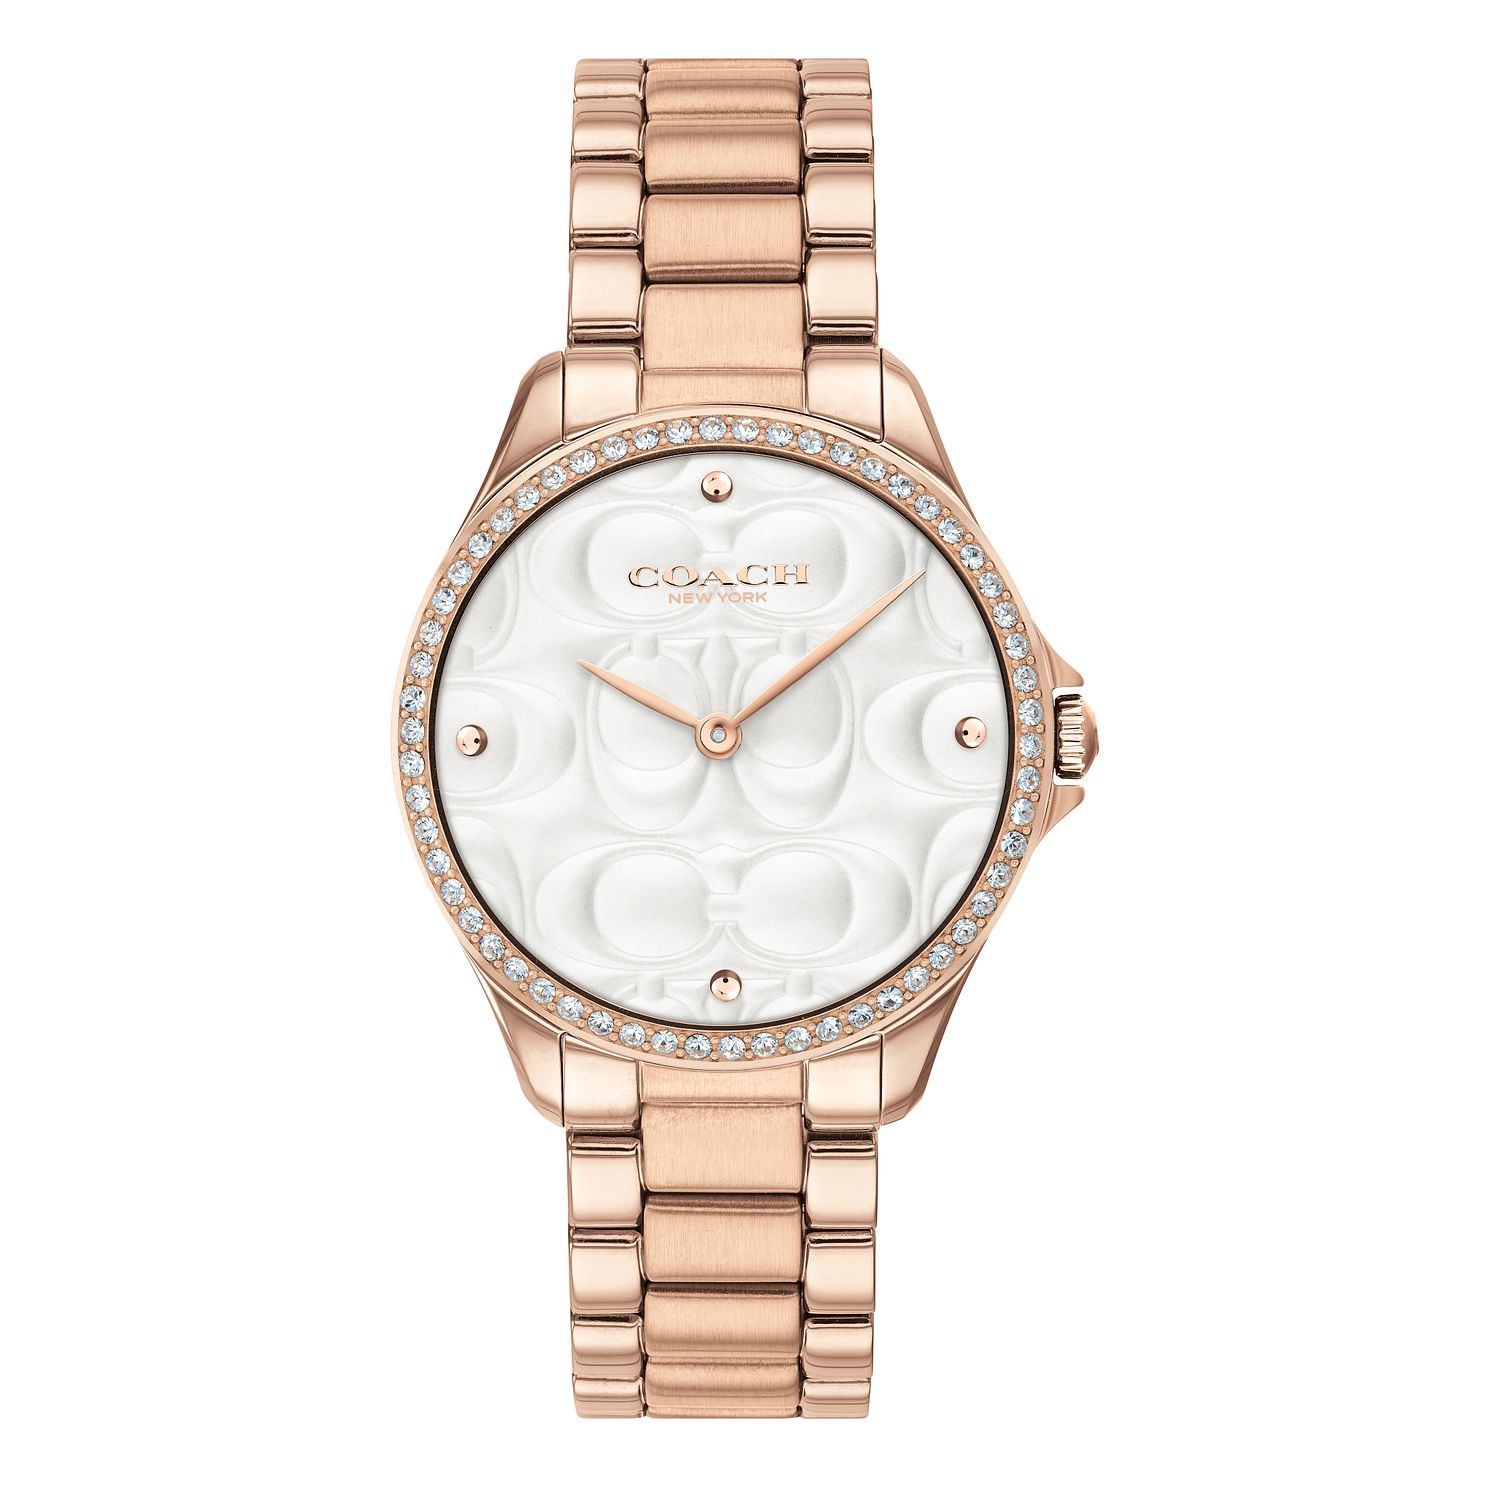 Coach Mod Sport Ladies' Rose Gold Tone Stone Set Watch - Product number 4517113